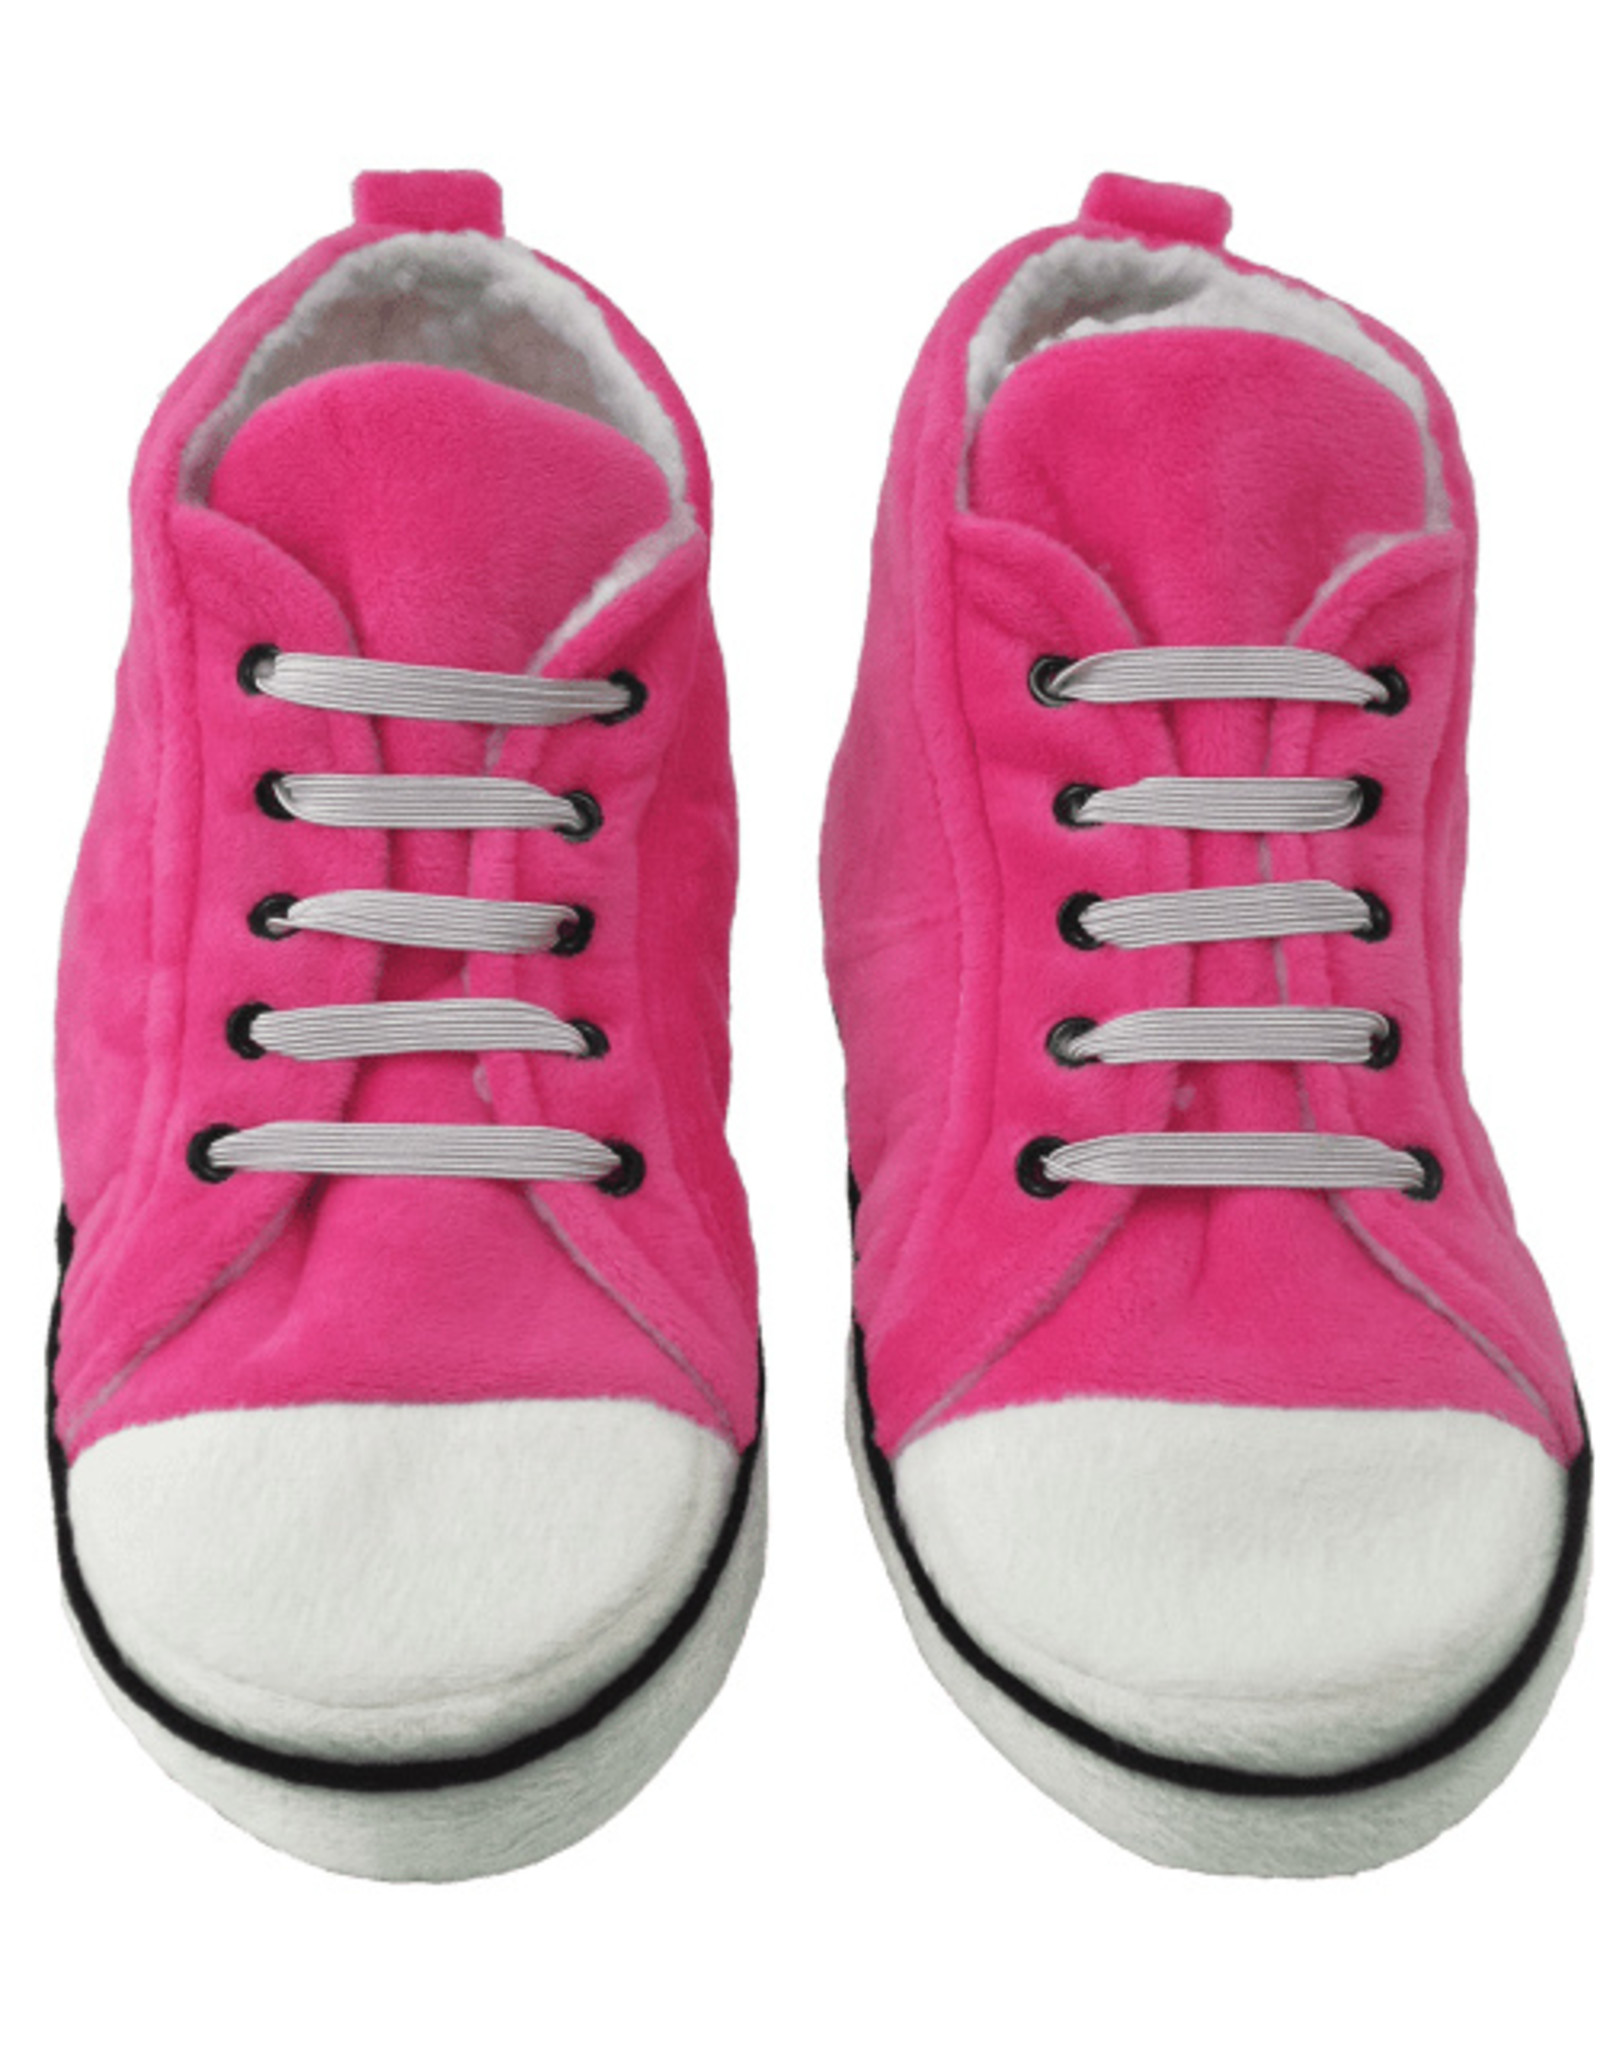 Iscream Pink Hi-Top Slippers Large (7-9)